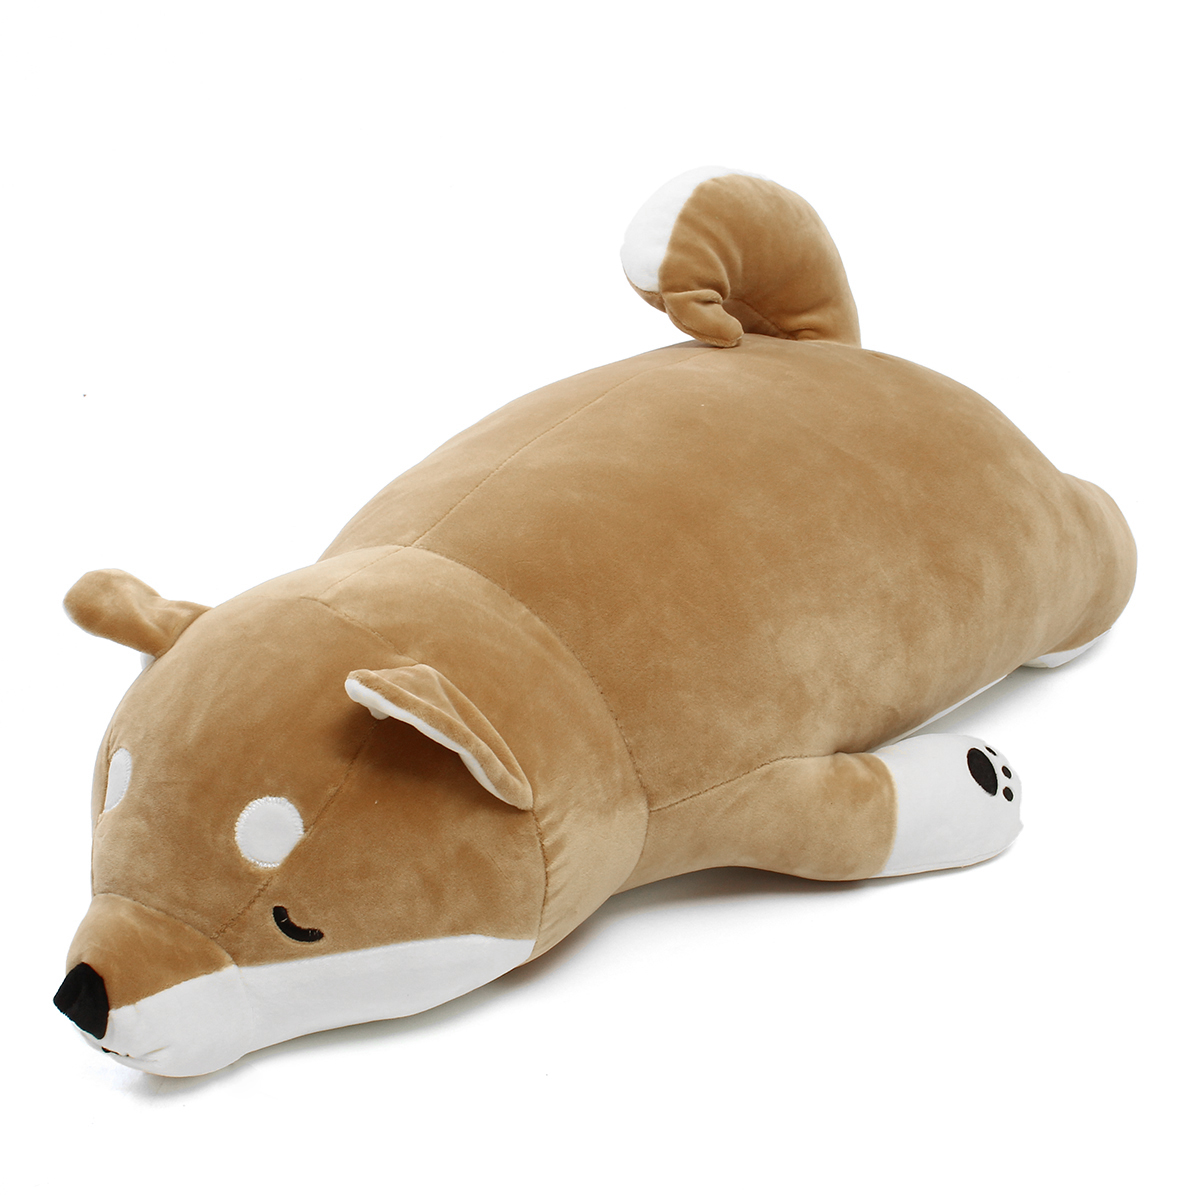 Japanese Anime Shiba Inu Dog Stuffed Plush Toy Doll Sof